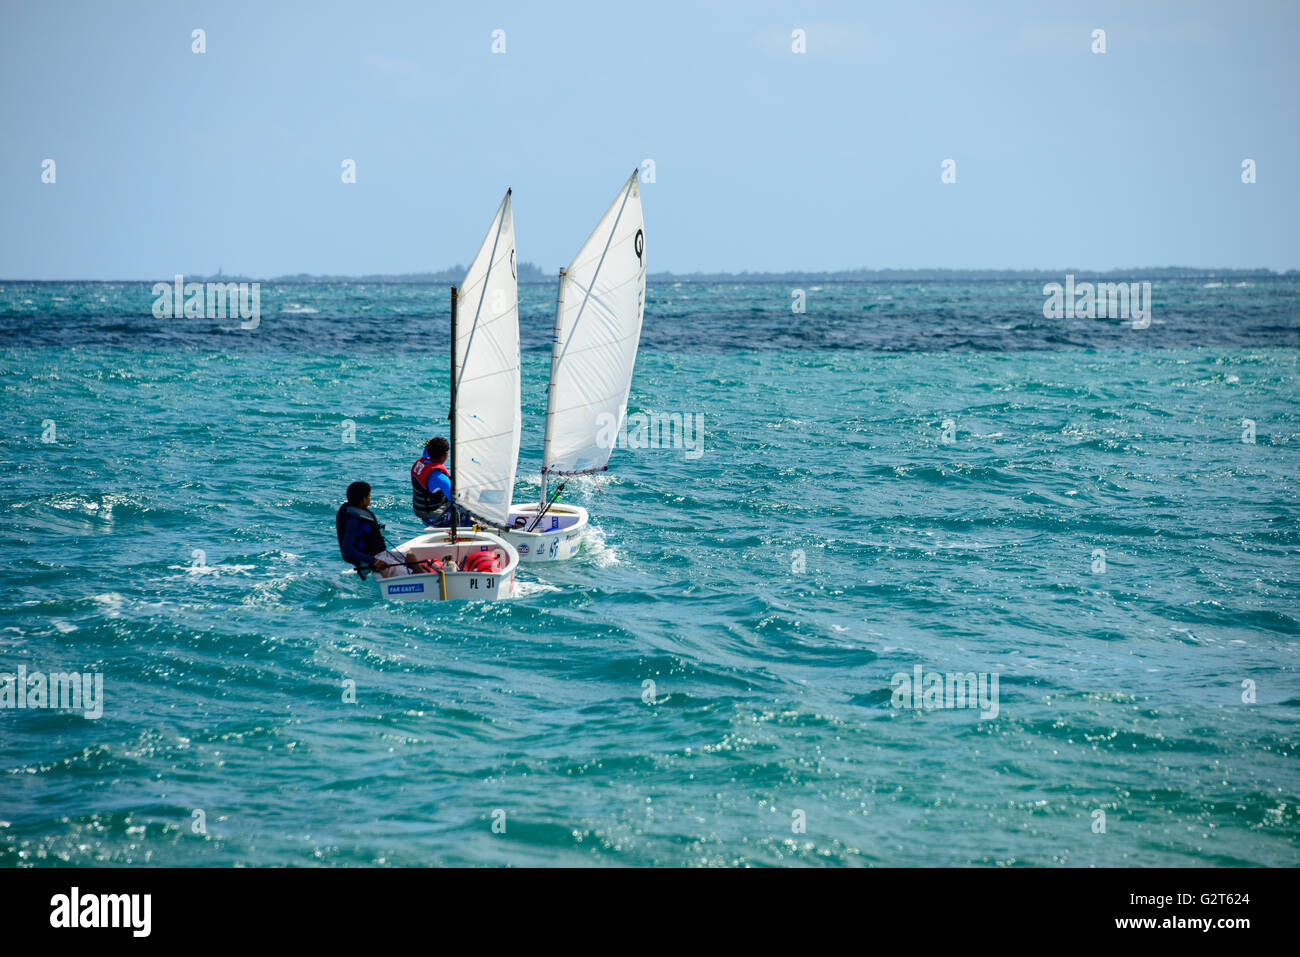 Sailing in Placencia, Belize - Stock Image